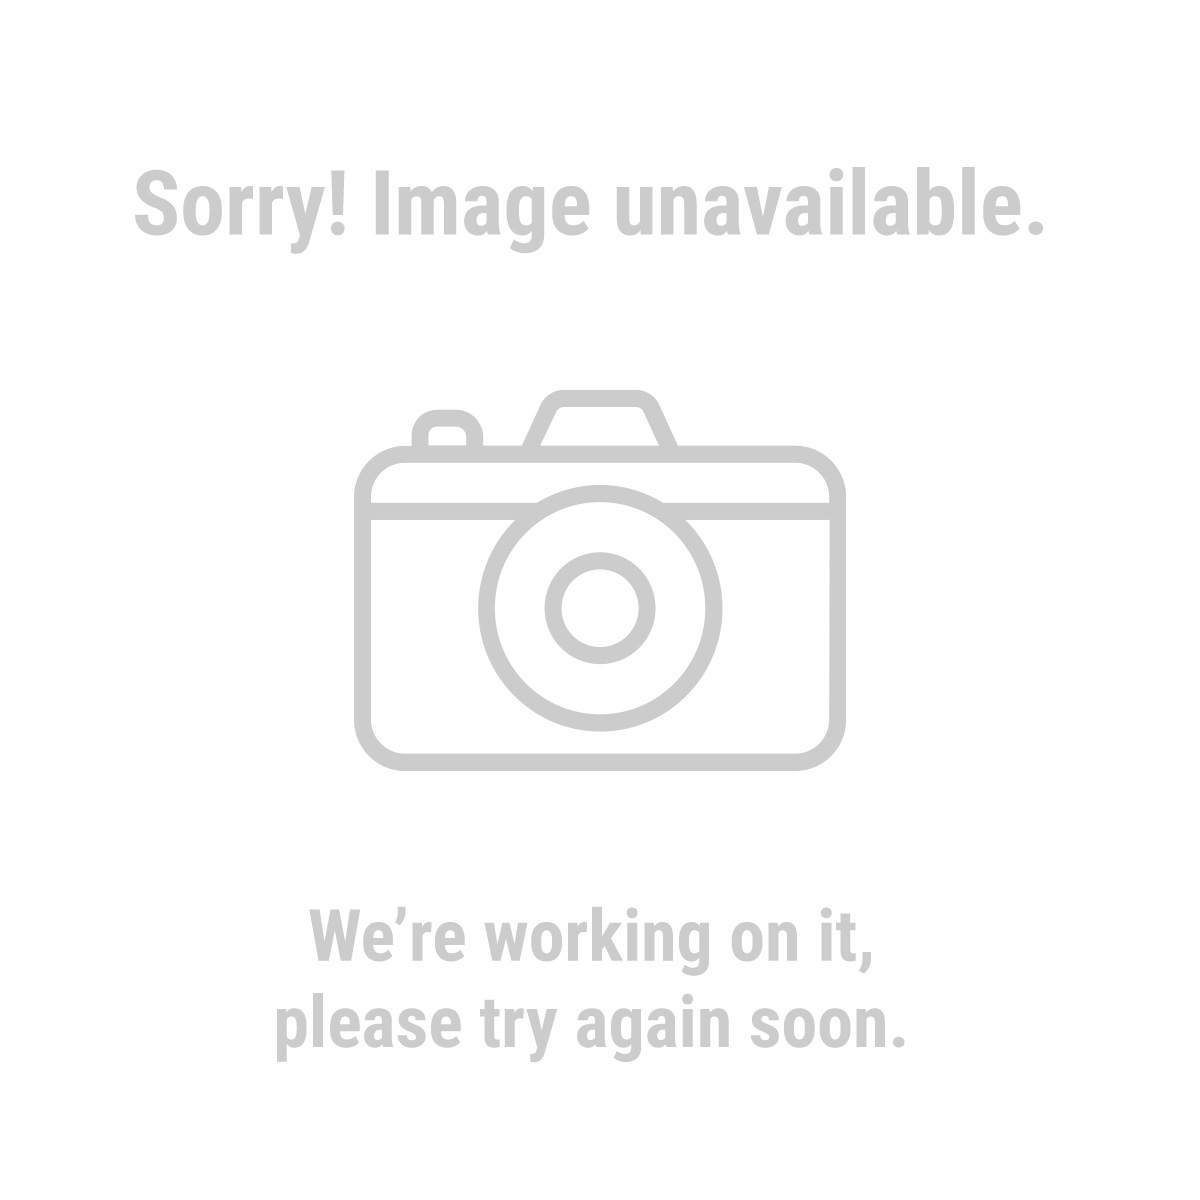 Chicago Electric Power Tools 95380 Benchtop Router Table with 1-3/4 HP Router